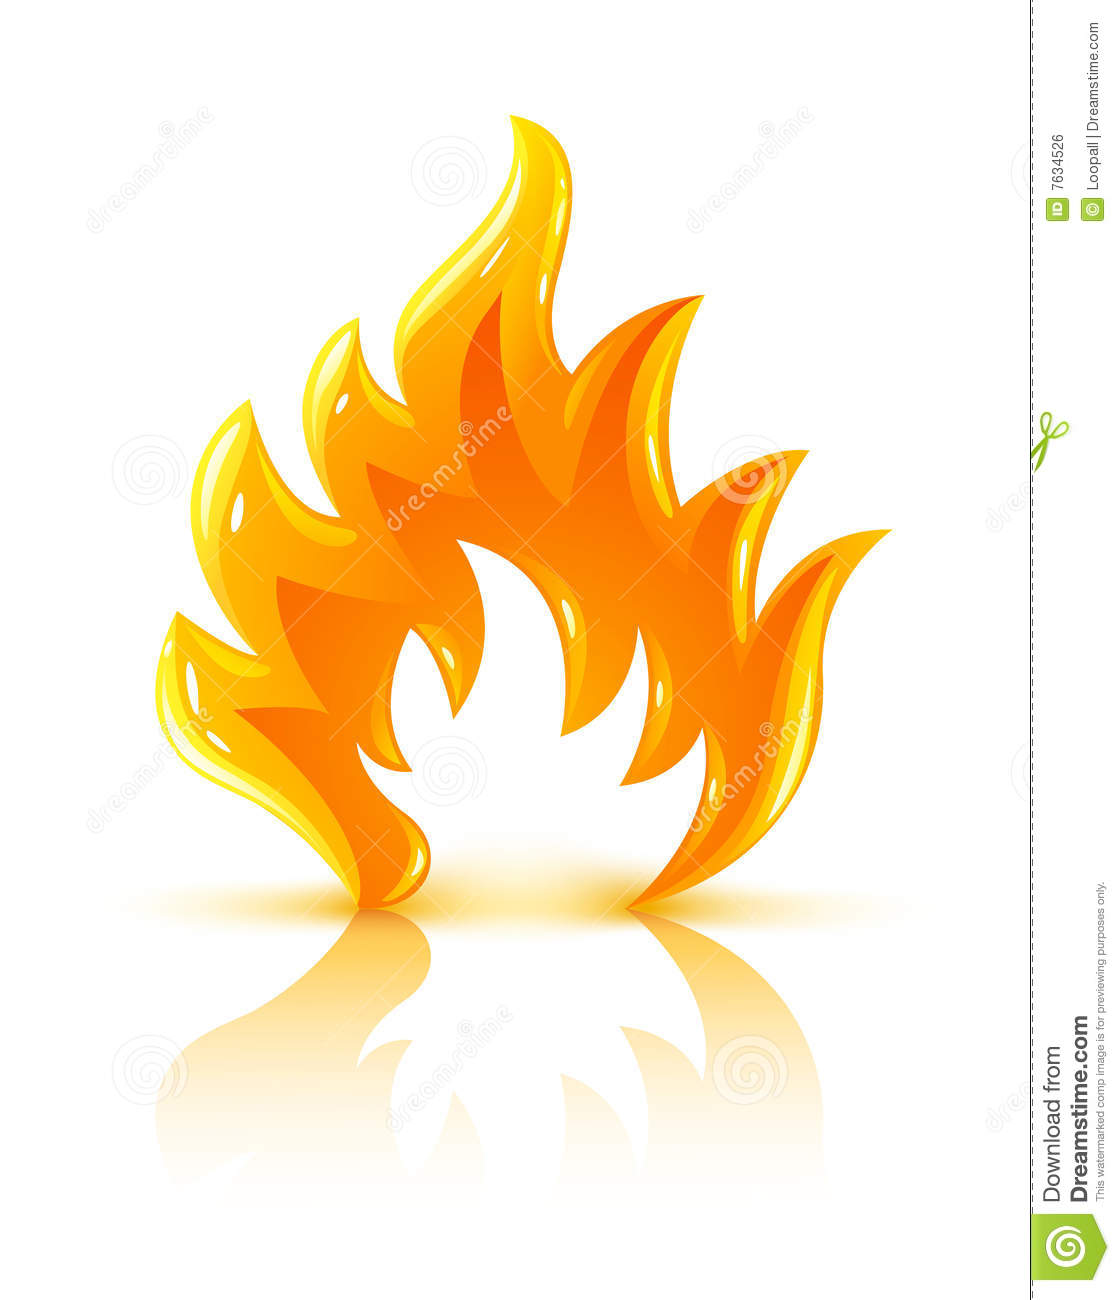 glossy burning fire flame icon royalty free stock image image